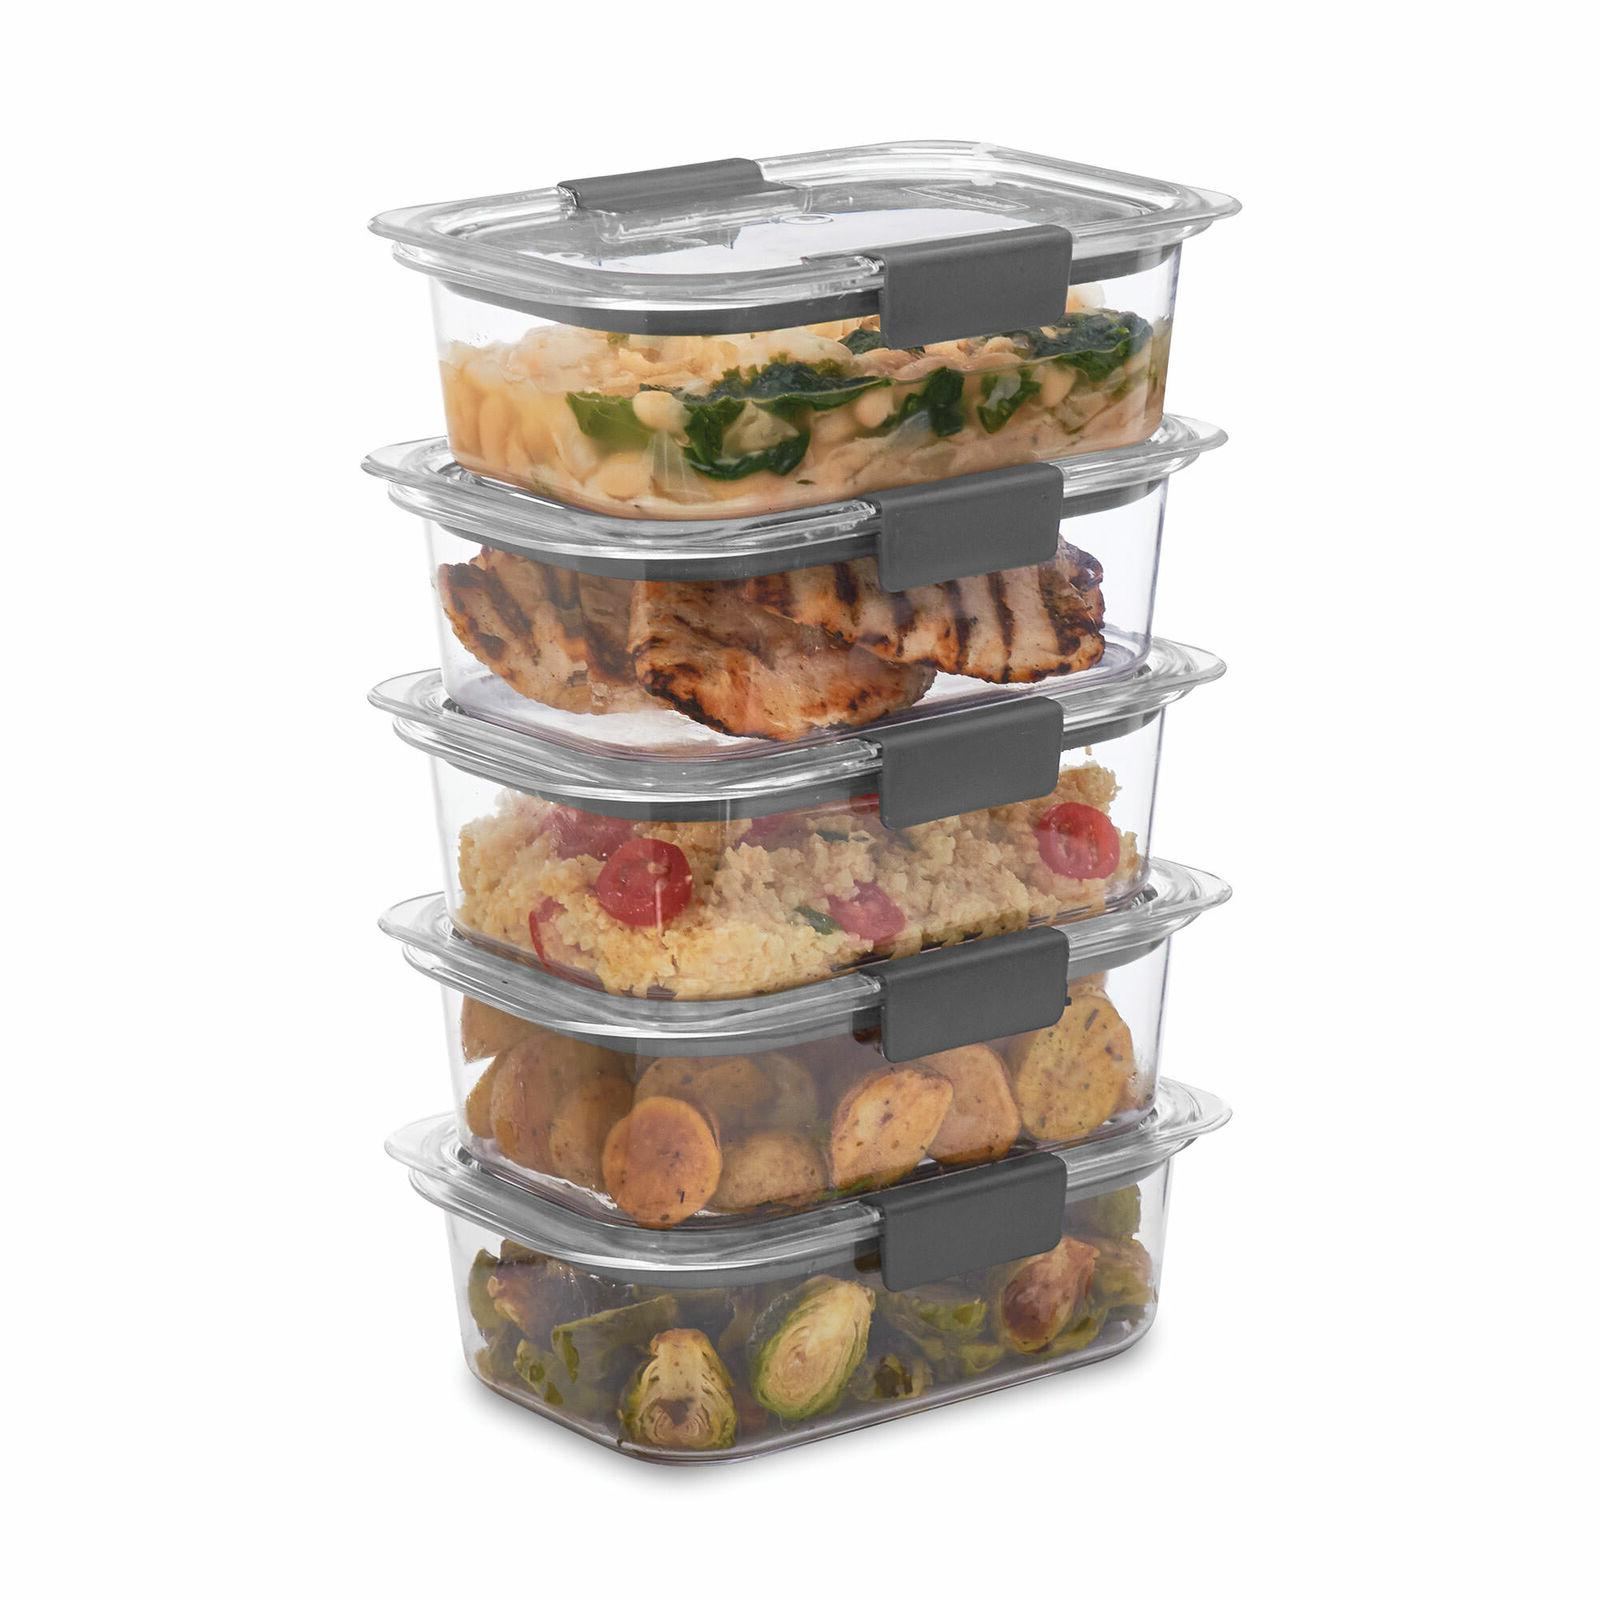 Rubbermaid Brilliance Food Storage Container 3.2Cup 5 Pck St